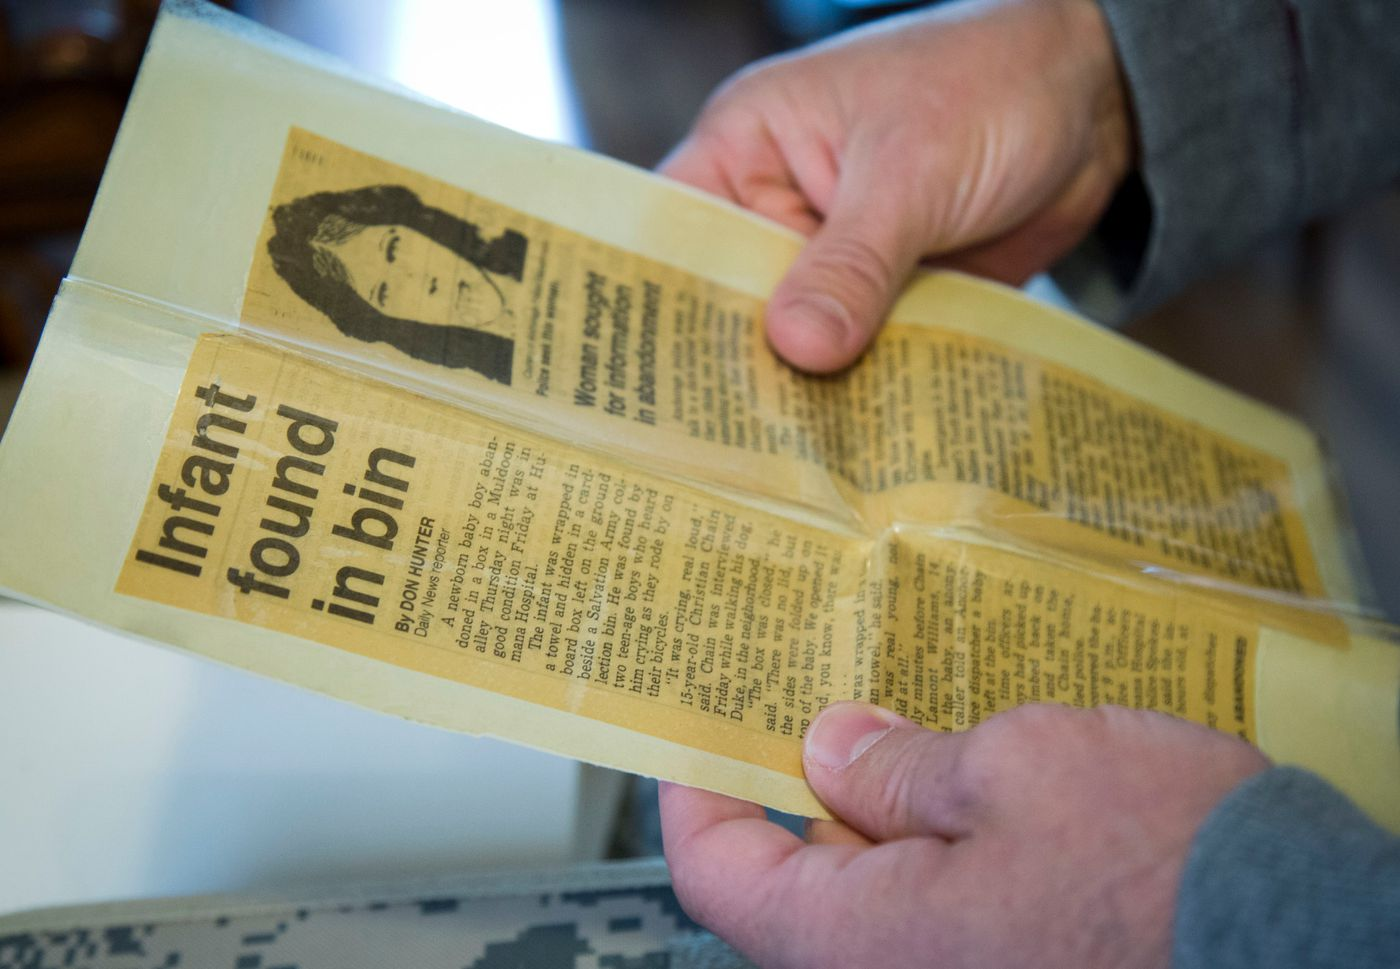 Almost 30 years ago, Benjamin Tveidt was abandoned as a baby outside the Salvation Army thrift store on Muldoon Road, and it made quite a splash in the Anchorage newspapers. The police composite is a woman of interest — not necessarily his birth mother —who was never found. Tveidt, who now lives in Boise, Idaho, is trying to find his birth family. (Katherine Jones / Idaho Statesman)